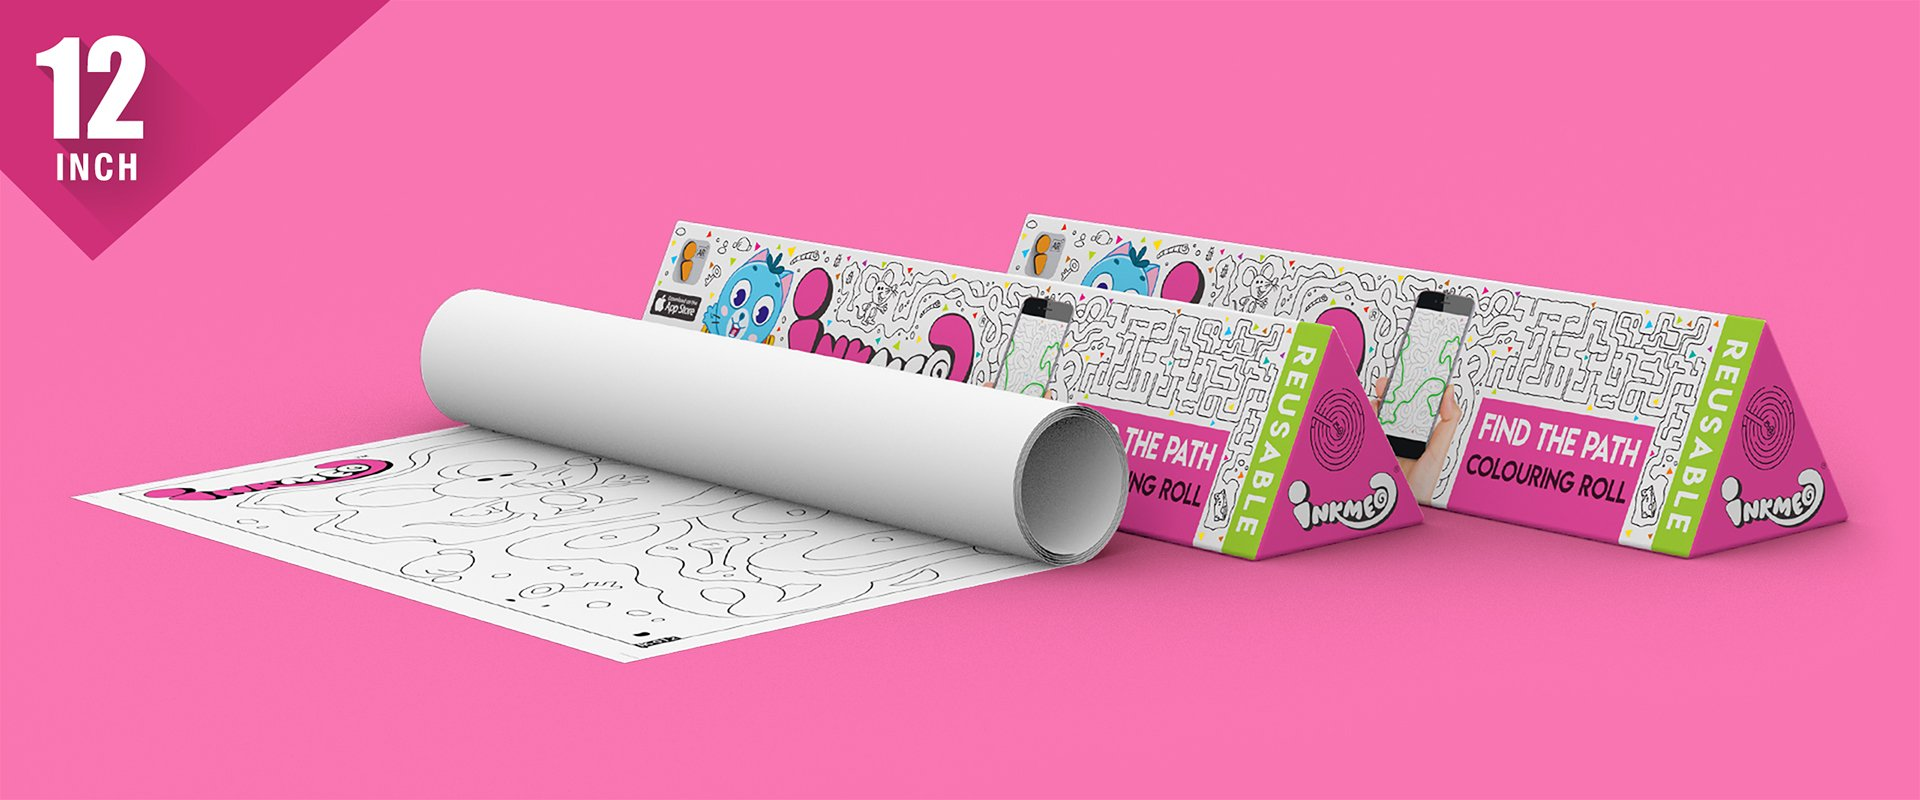 Find the Path Colouring Roll (12 inch)